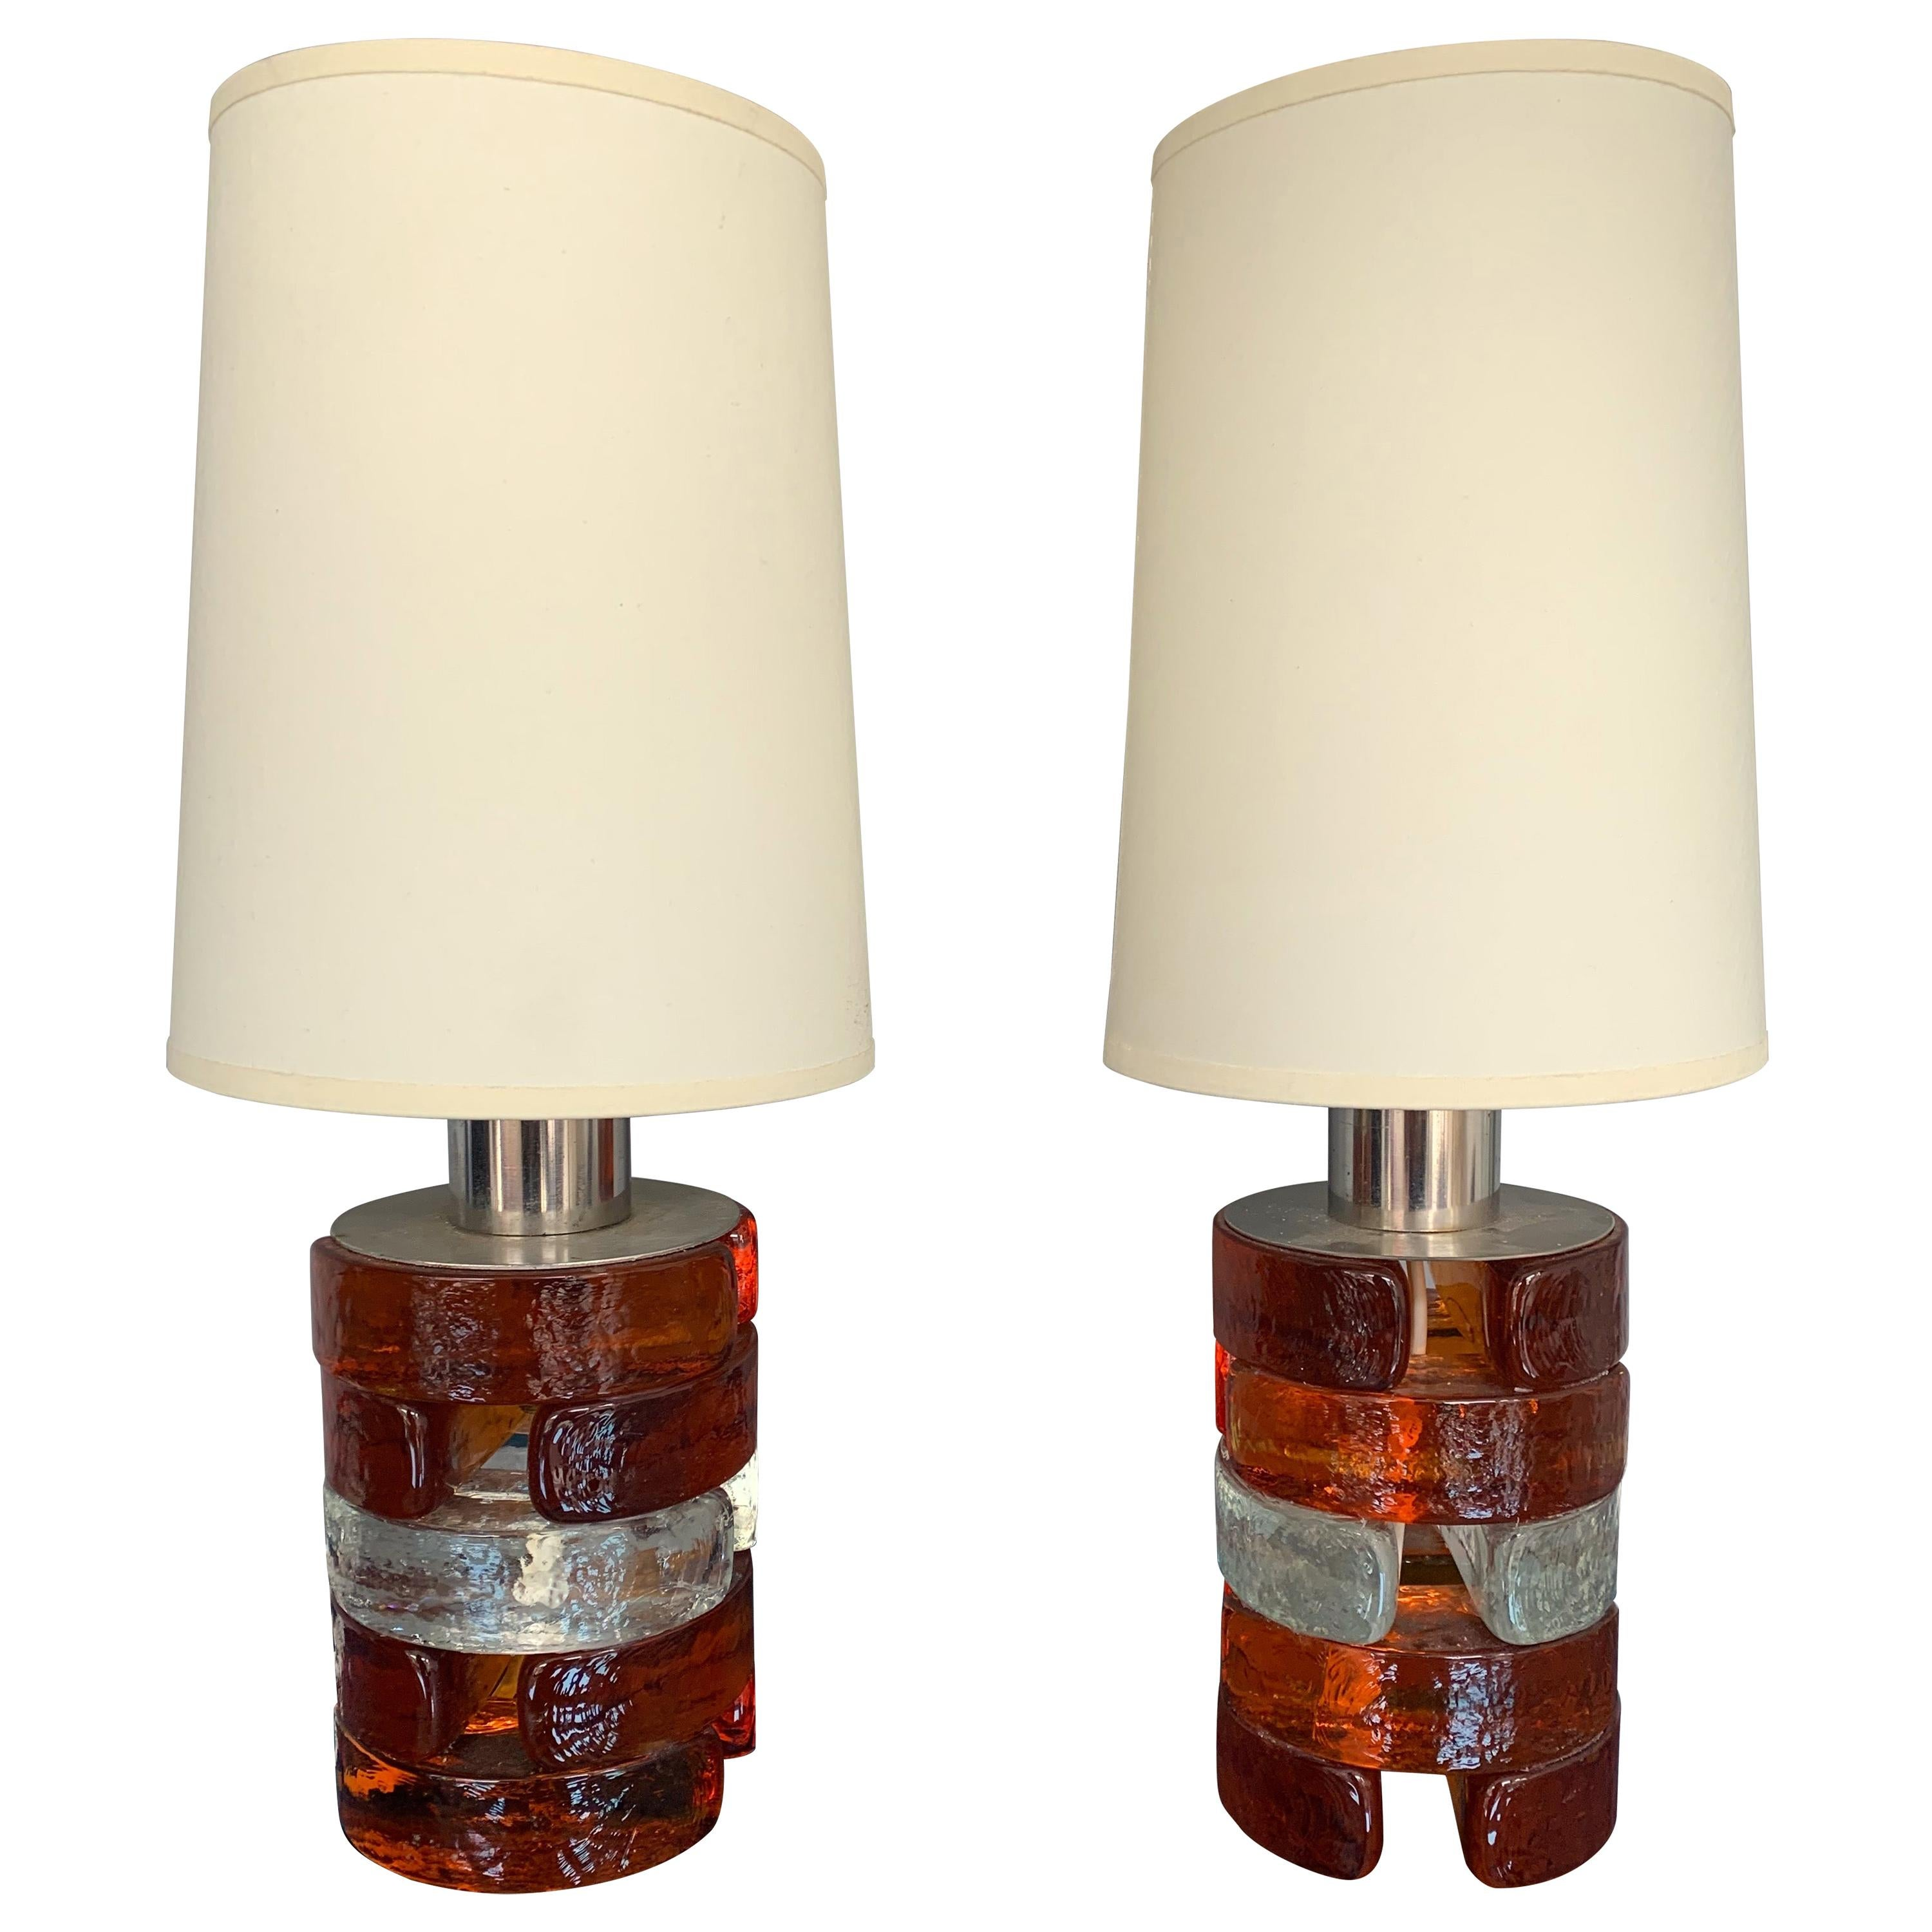 Pair of Pressed Glass and Metal Lamps by Biancardi, Italy, 1970s